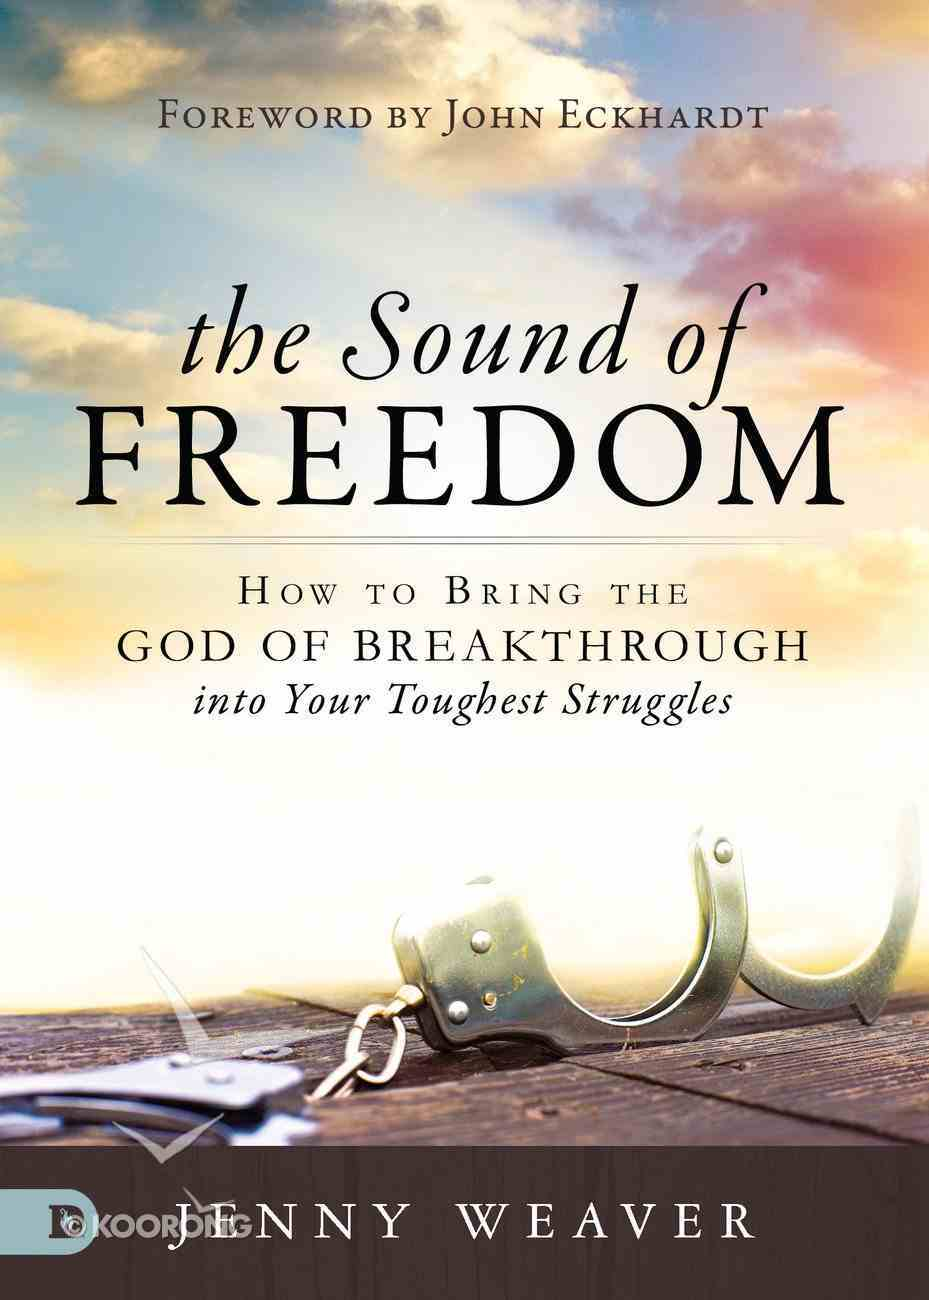 The Sound of Freedom: How to Bring the God of the Breakthrough Into Your Toughest Struggles Paperback